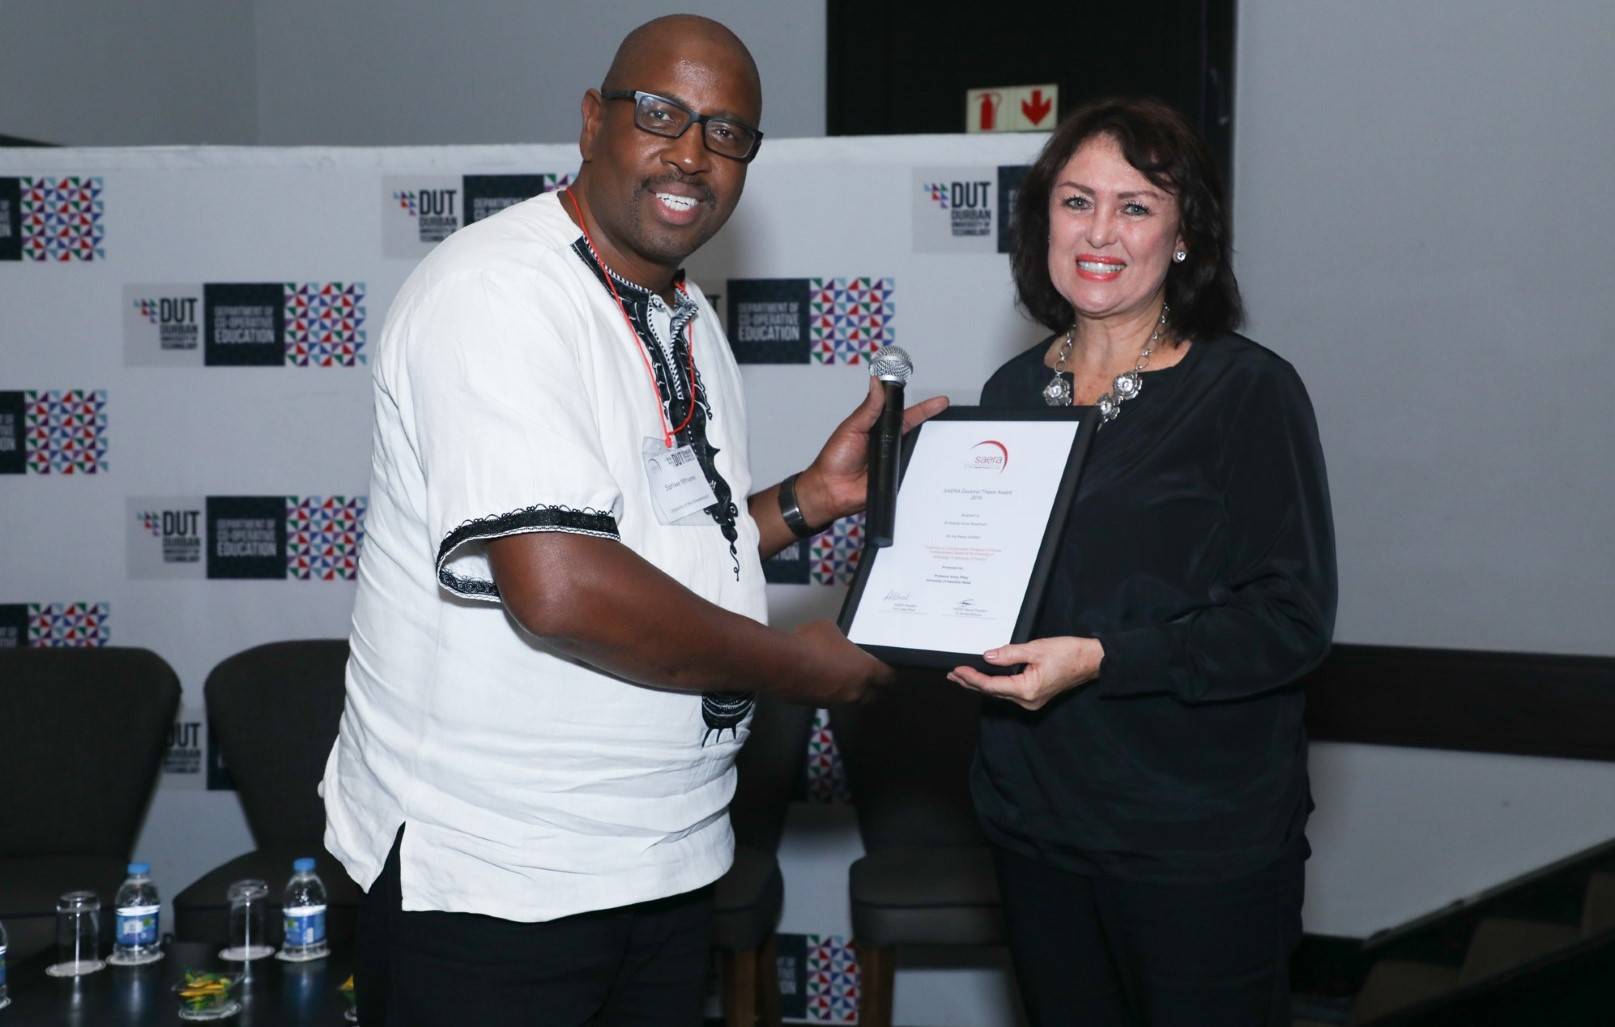 Education Alumnus Receives Best Thesis Award at SAERA conference